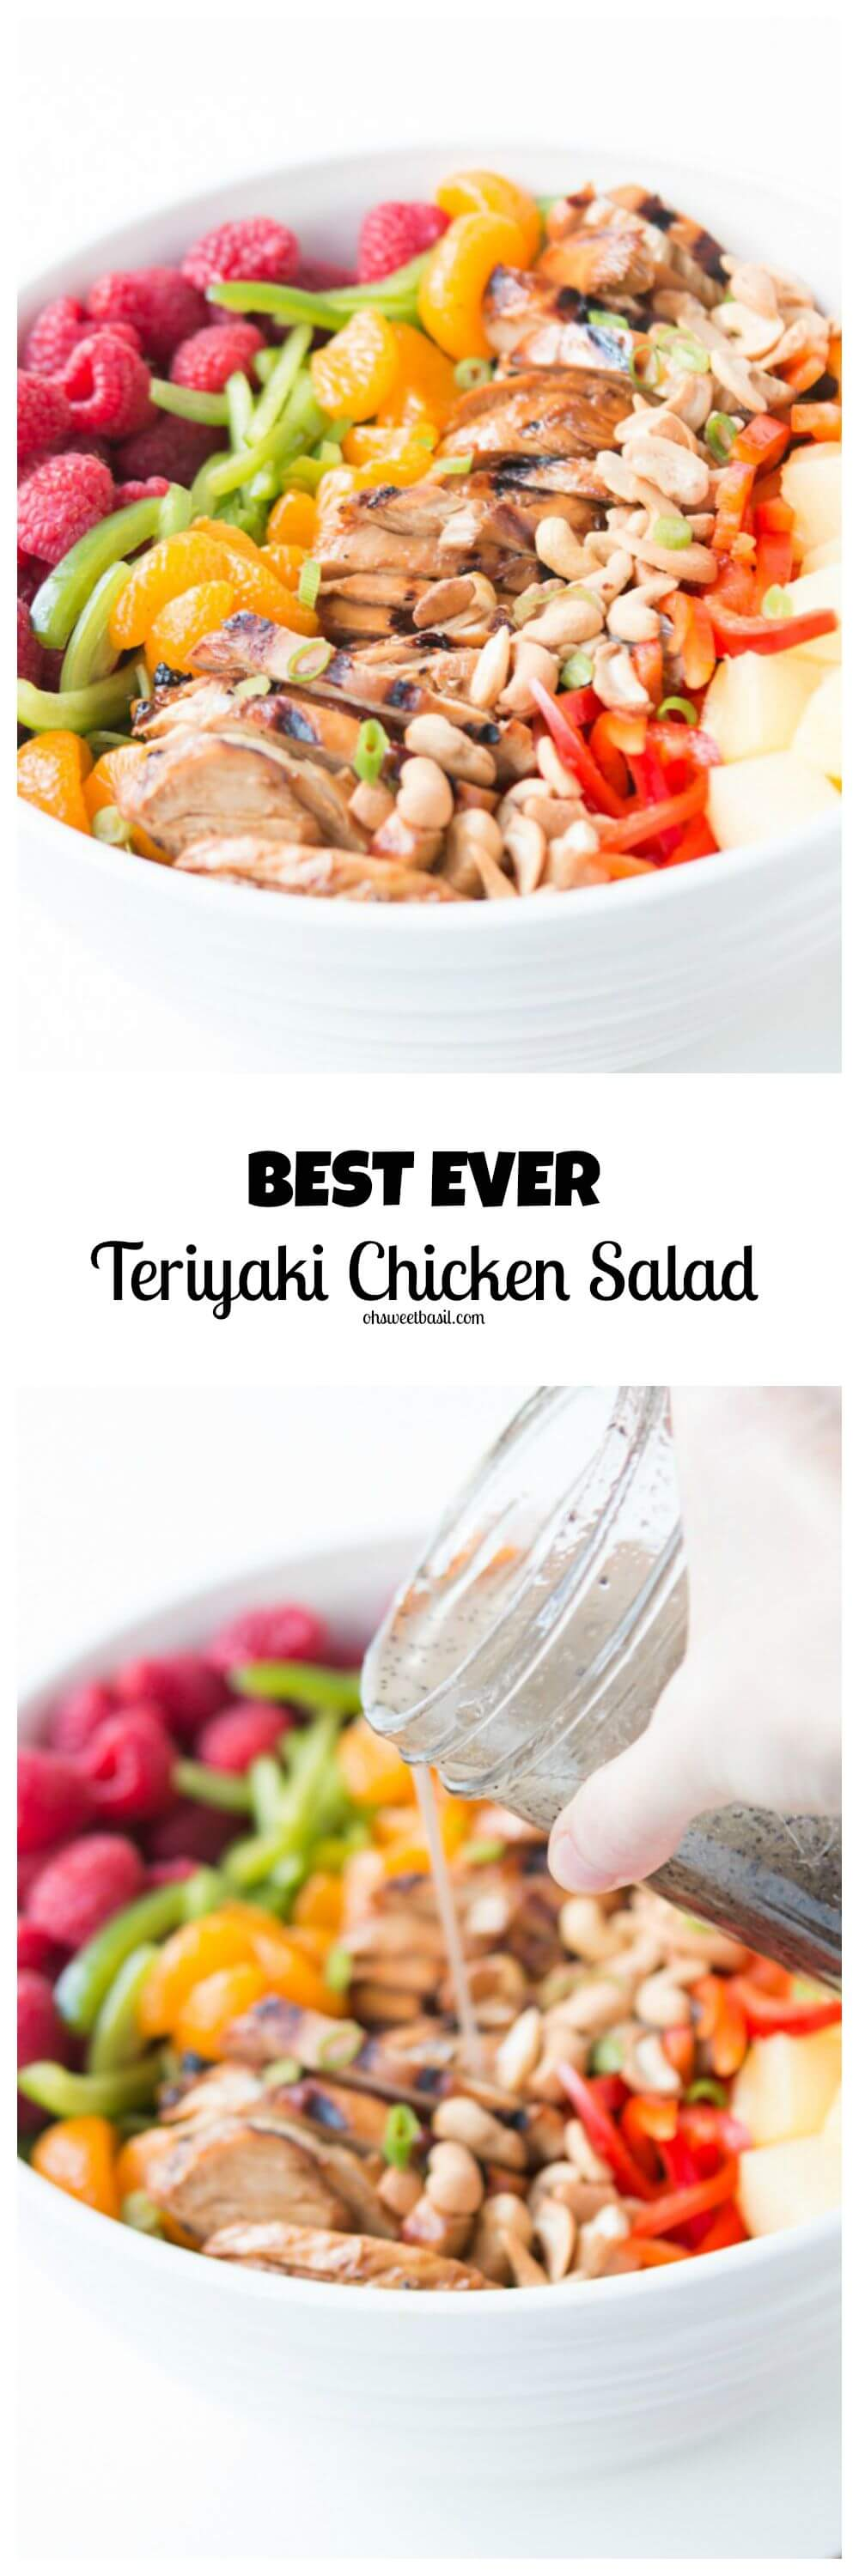 We are completely obsessed with this teriyaki chicken salad loaded with greens, layers of fruit and veggies and that chicken plus a yummy poppy seed dressing! ohsweetbasil.com